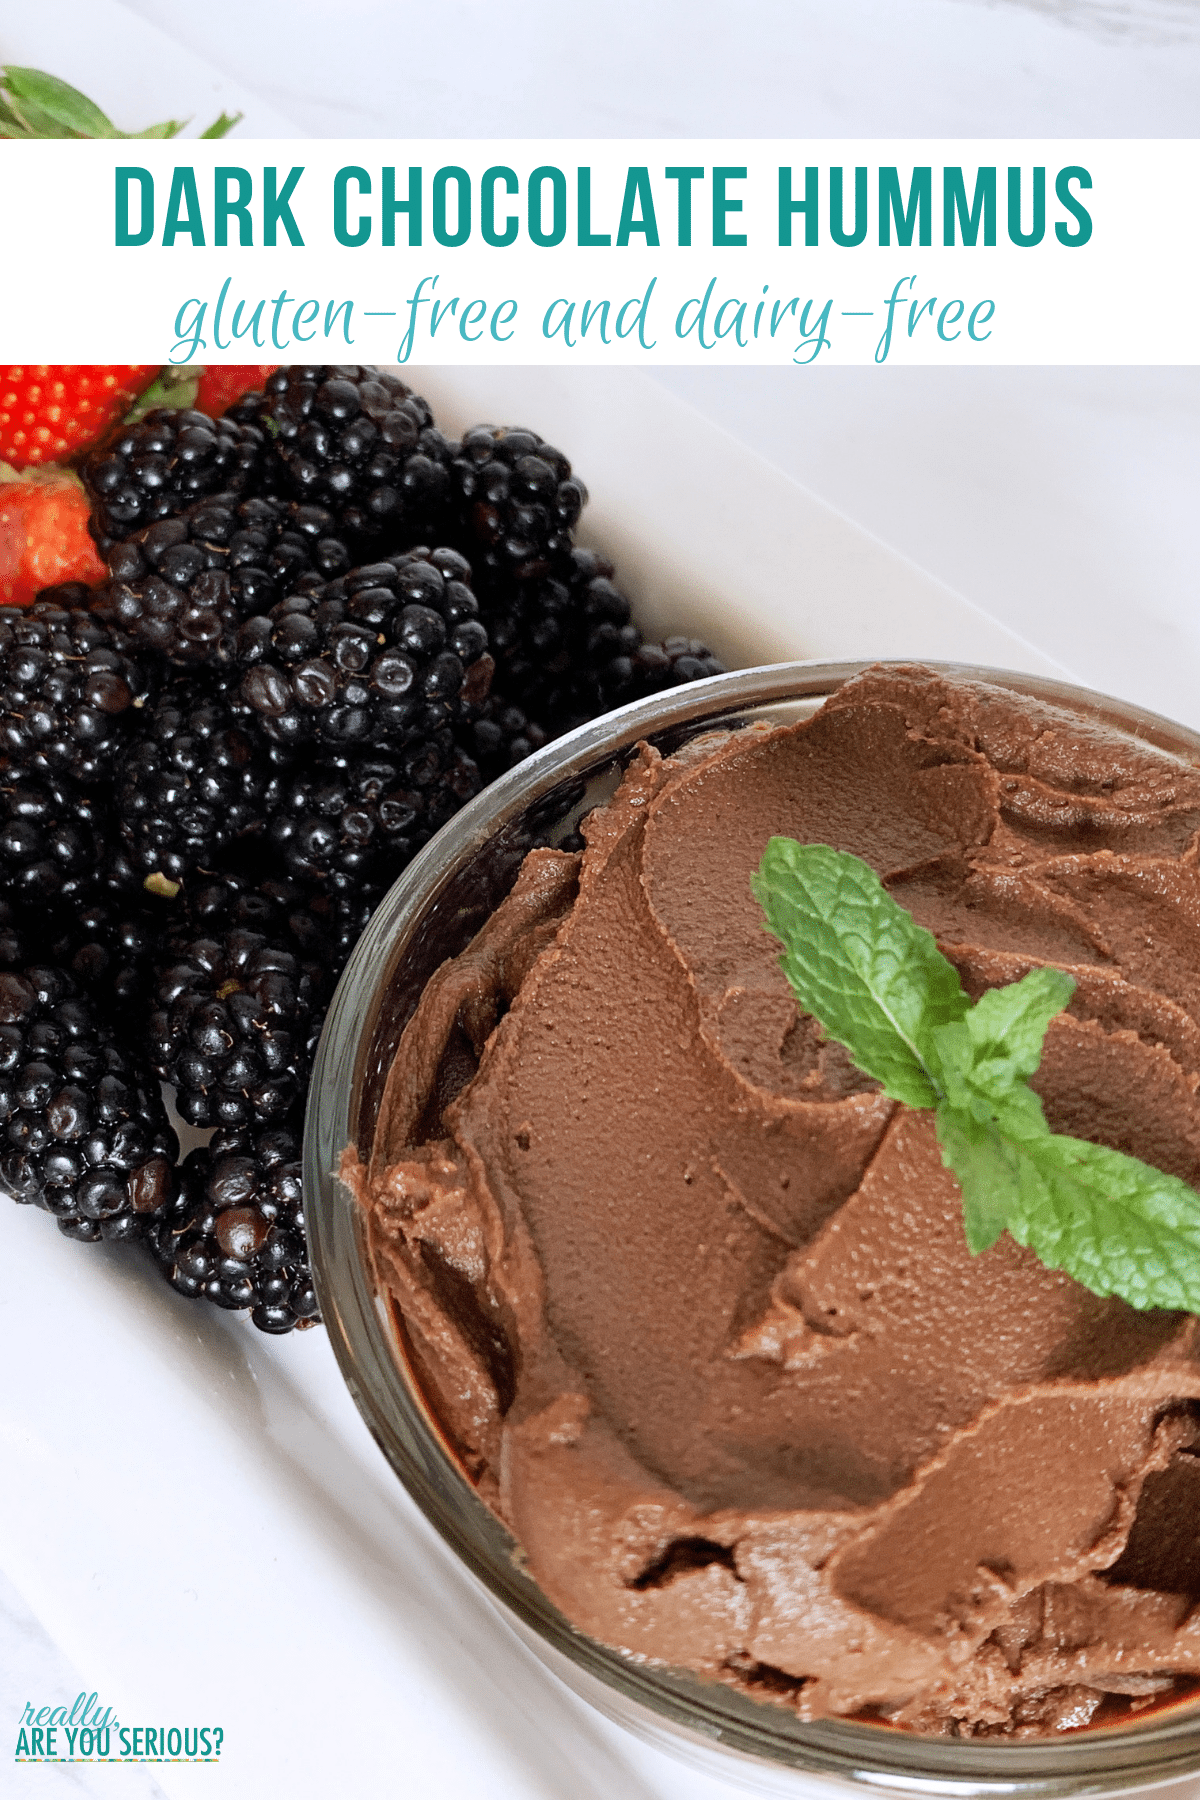 Gluten free and dairy free dark chocolate hummus